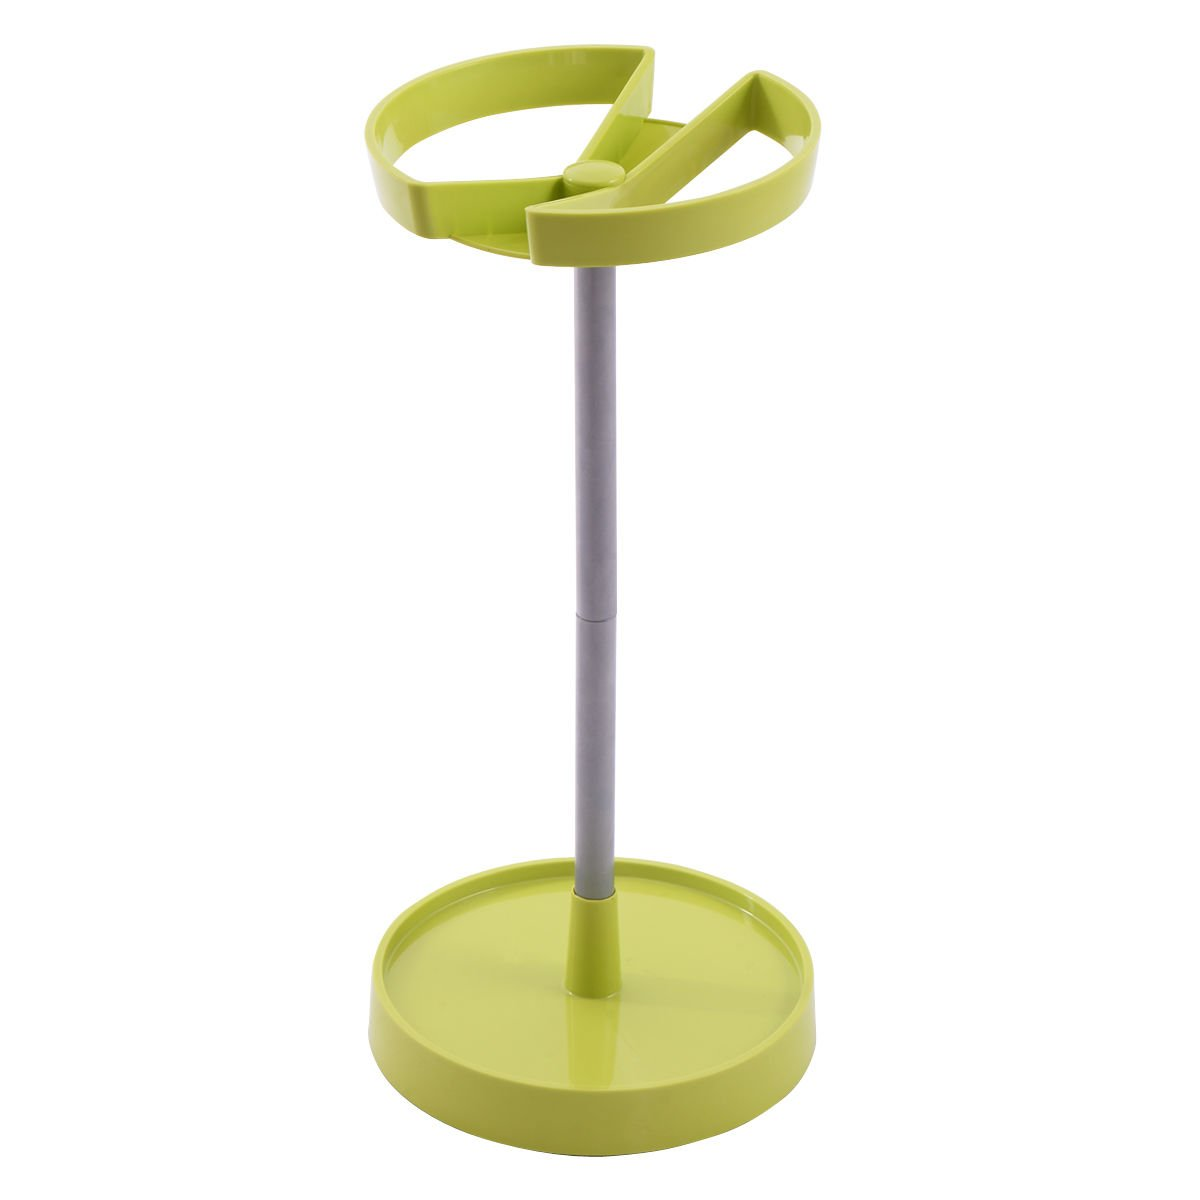 TANGKULA Umbrella Stand Rack Modern Round Storage Home Office Entryway Furniture